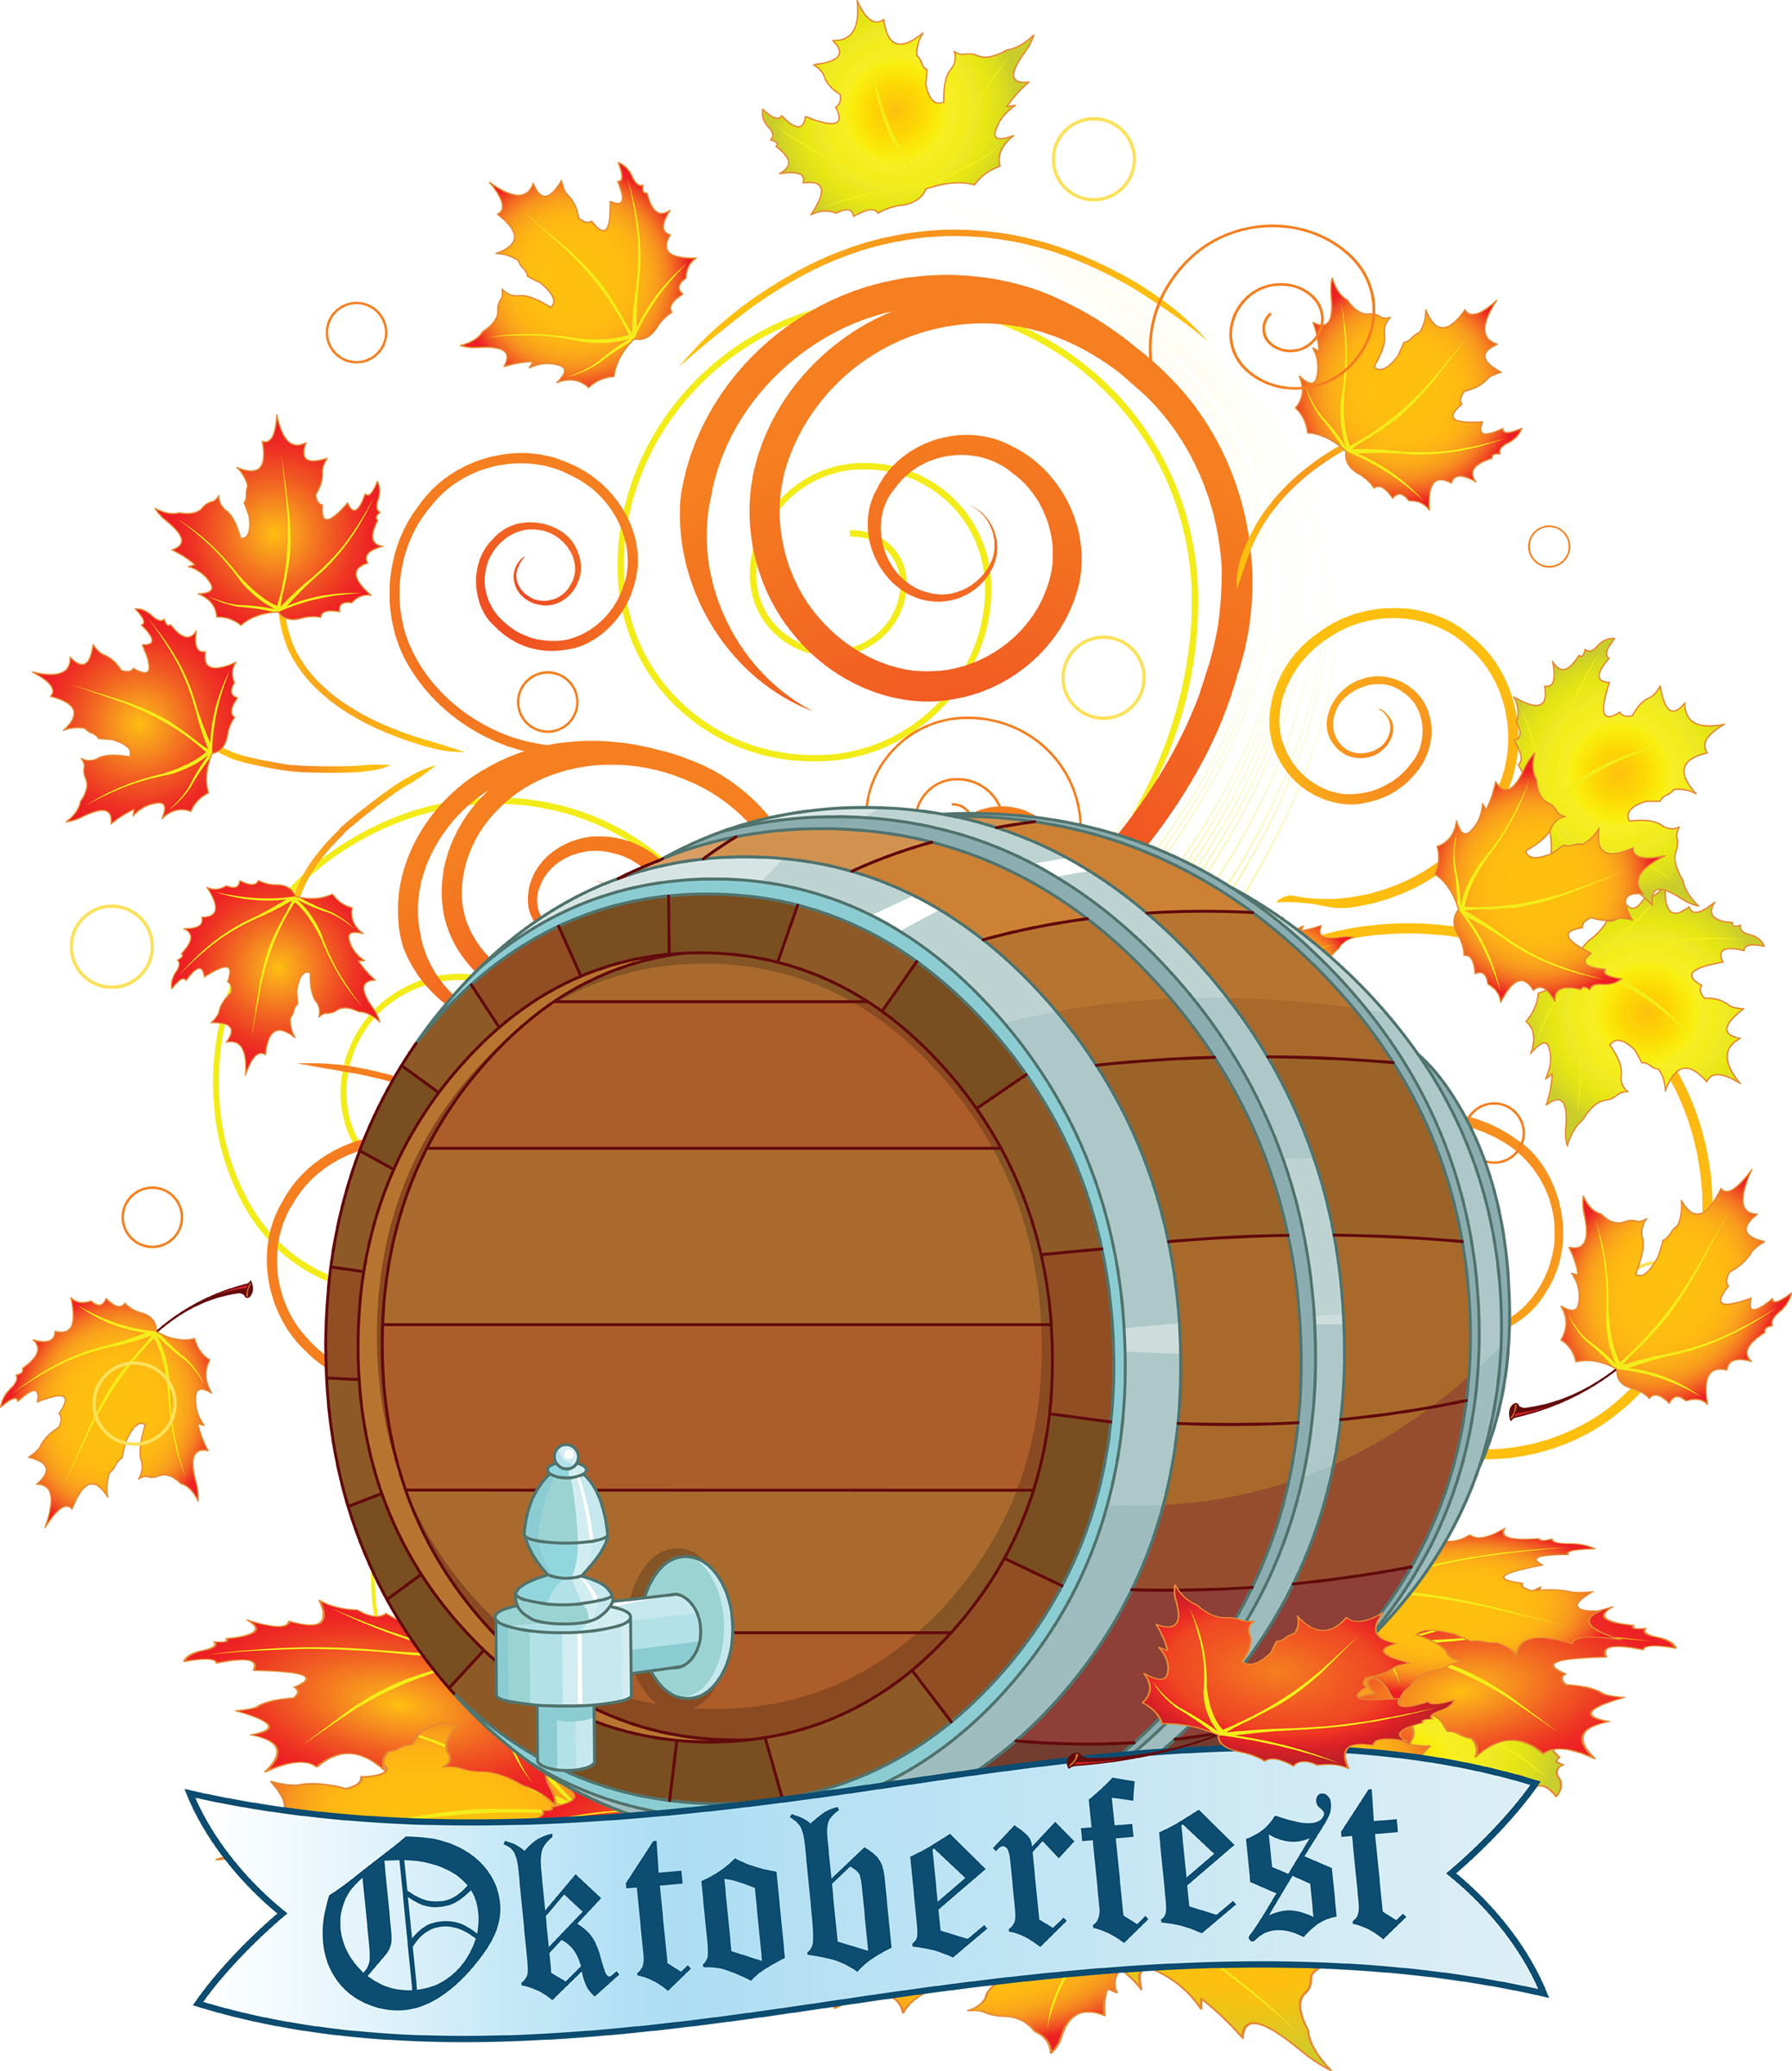 Oktoberfest Events around Portland Oregon